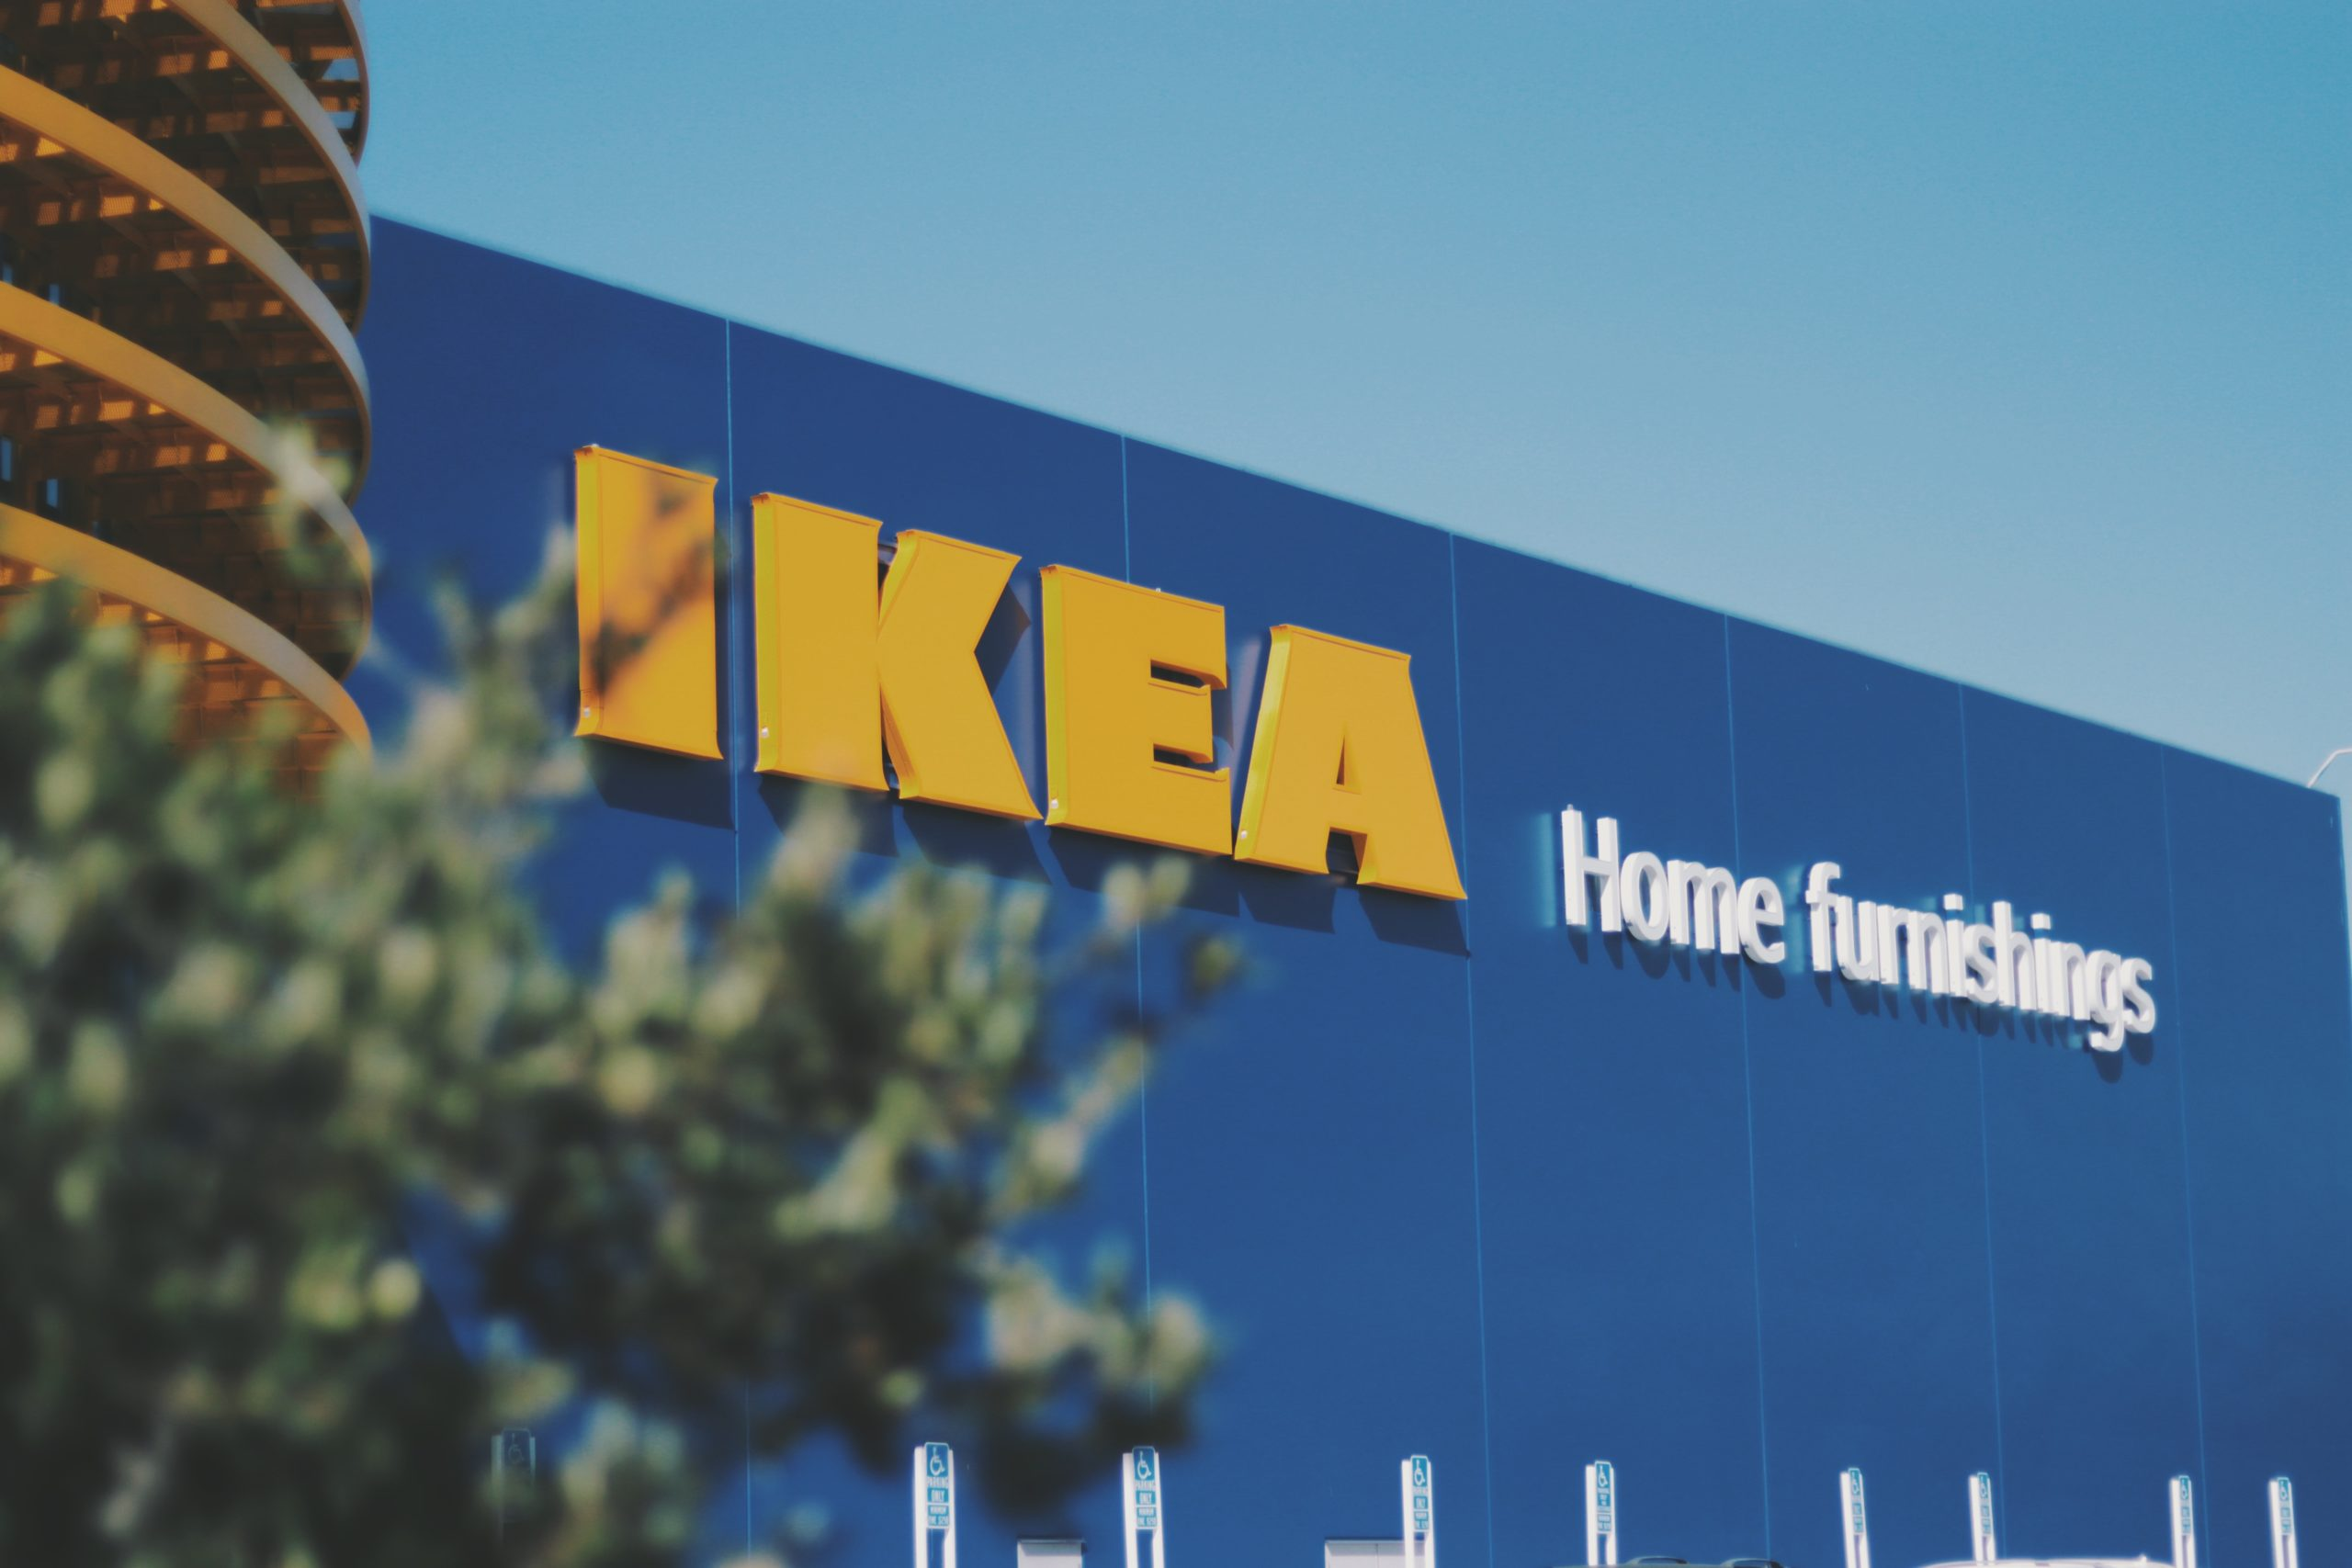 Ikea Reminds Customers Not to Masturbate in Store Thanks to Viral Video